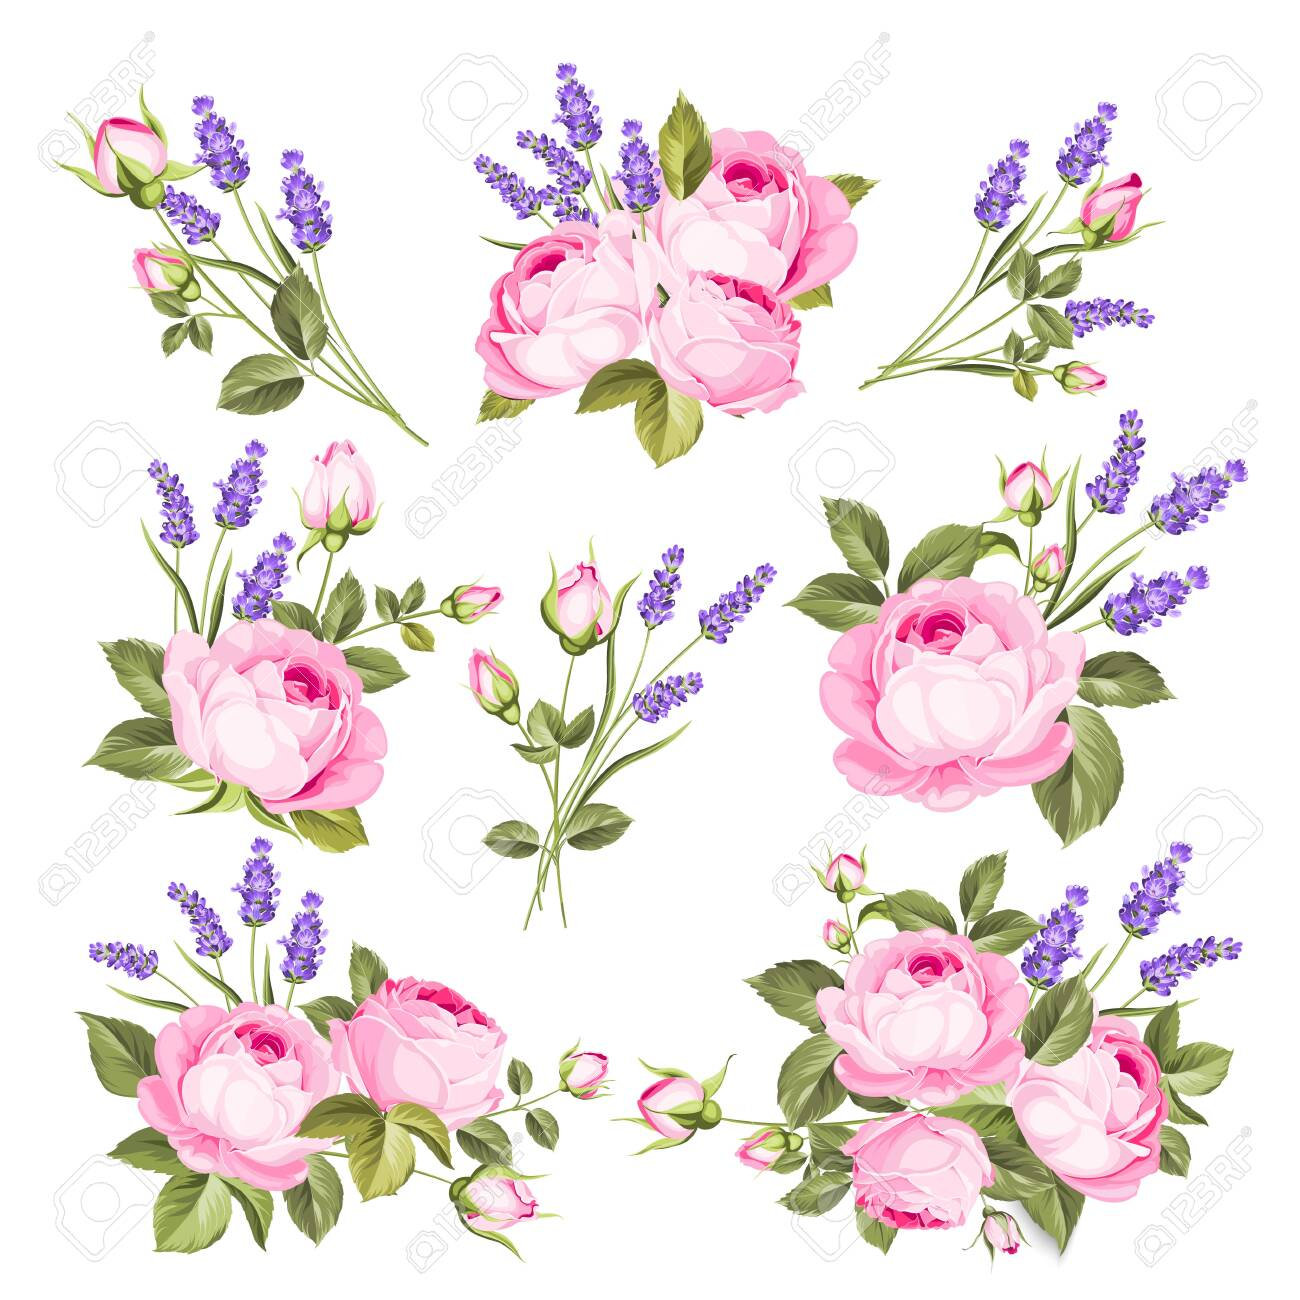 Vector set of blooming flowers. Spring, summer wedding romantic elegant date marriage symbol. Rose and Lavender garland, bouquet for your template, design of invitation card. Vintage illustration. - 139061609